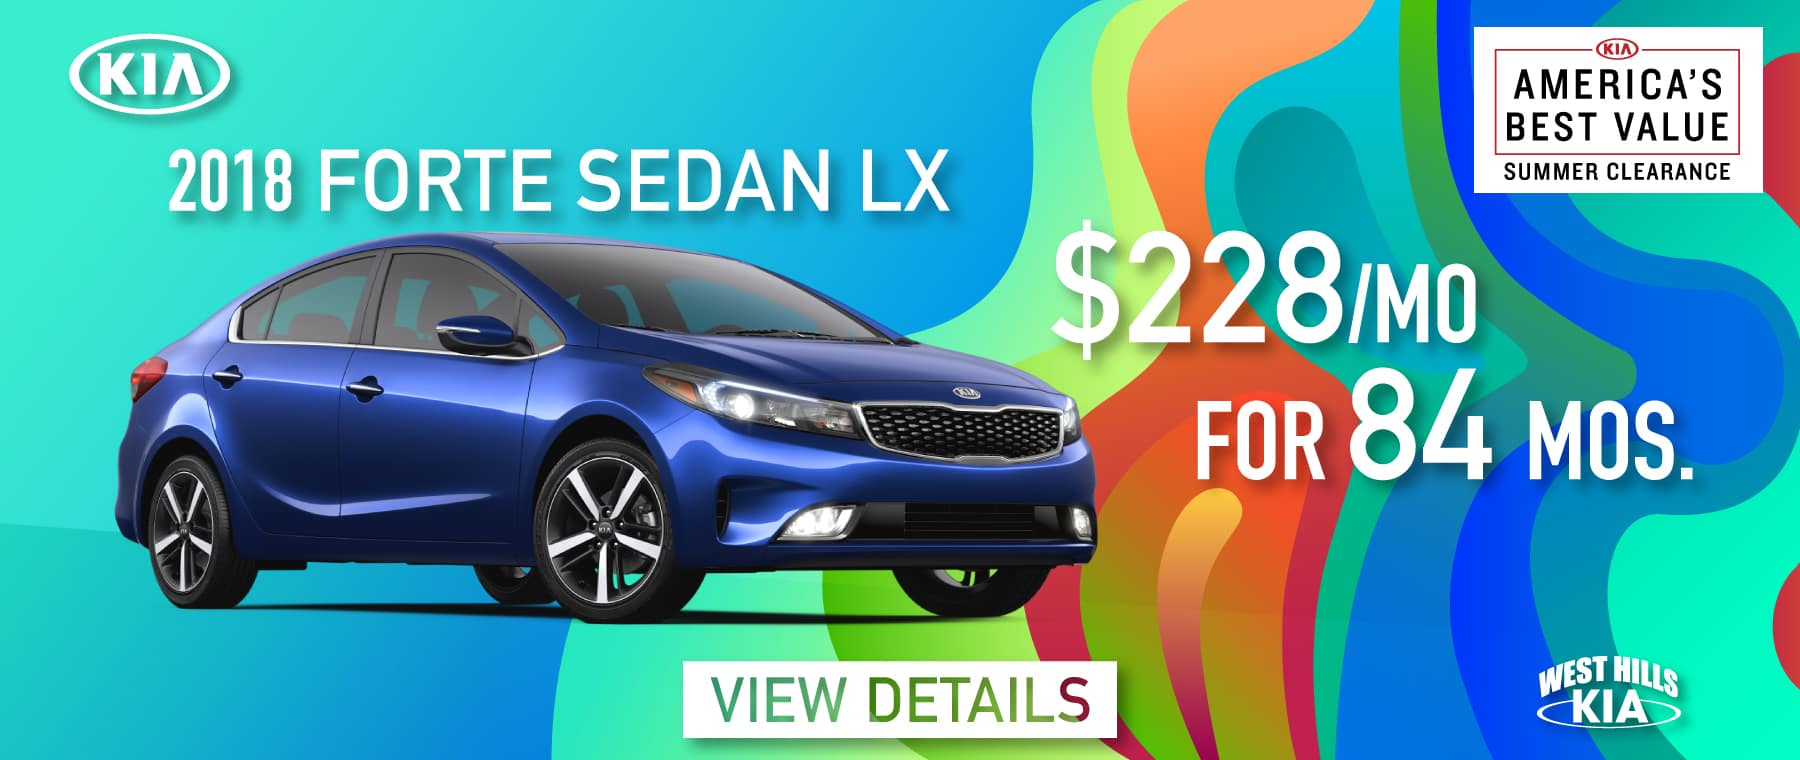 2018 Kia Forte LX Purchase for $228/mo. For 84 mos. *